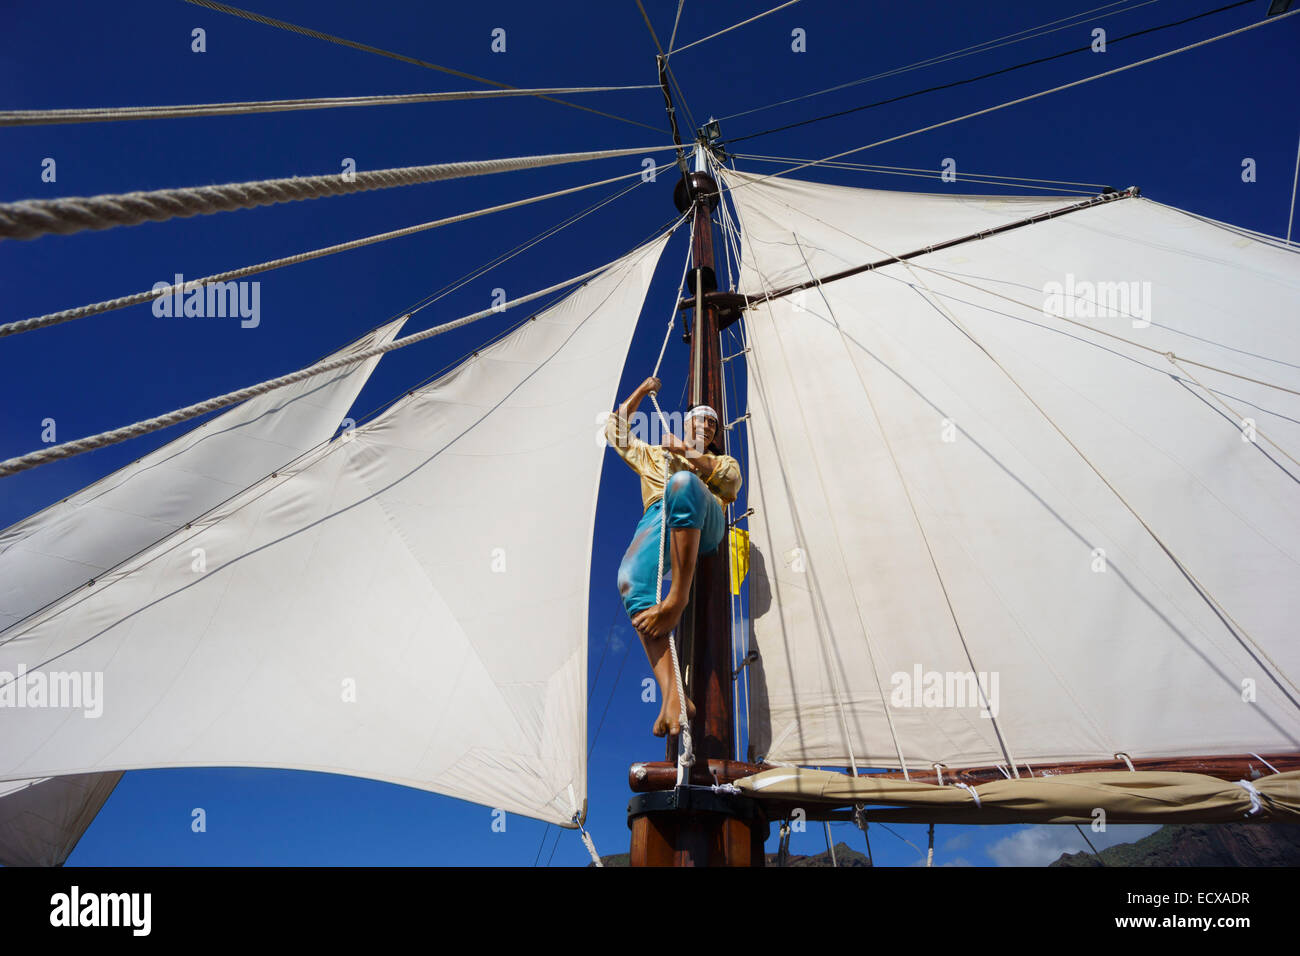 Tenerife - Flipper Uno 'pirate ship' tourist excursion, dolphin watching, to Masca bay from Los Gigantes. - Stock Image